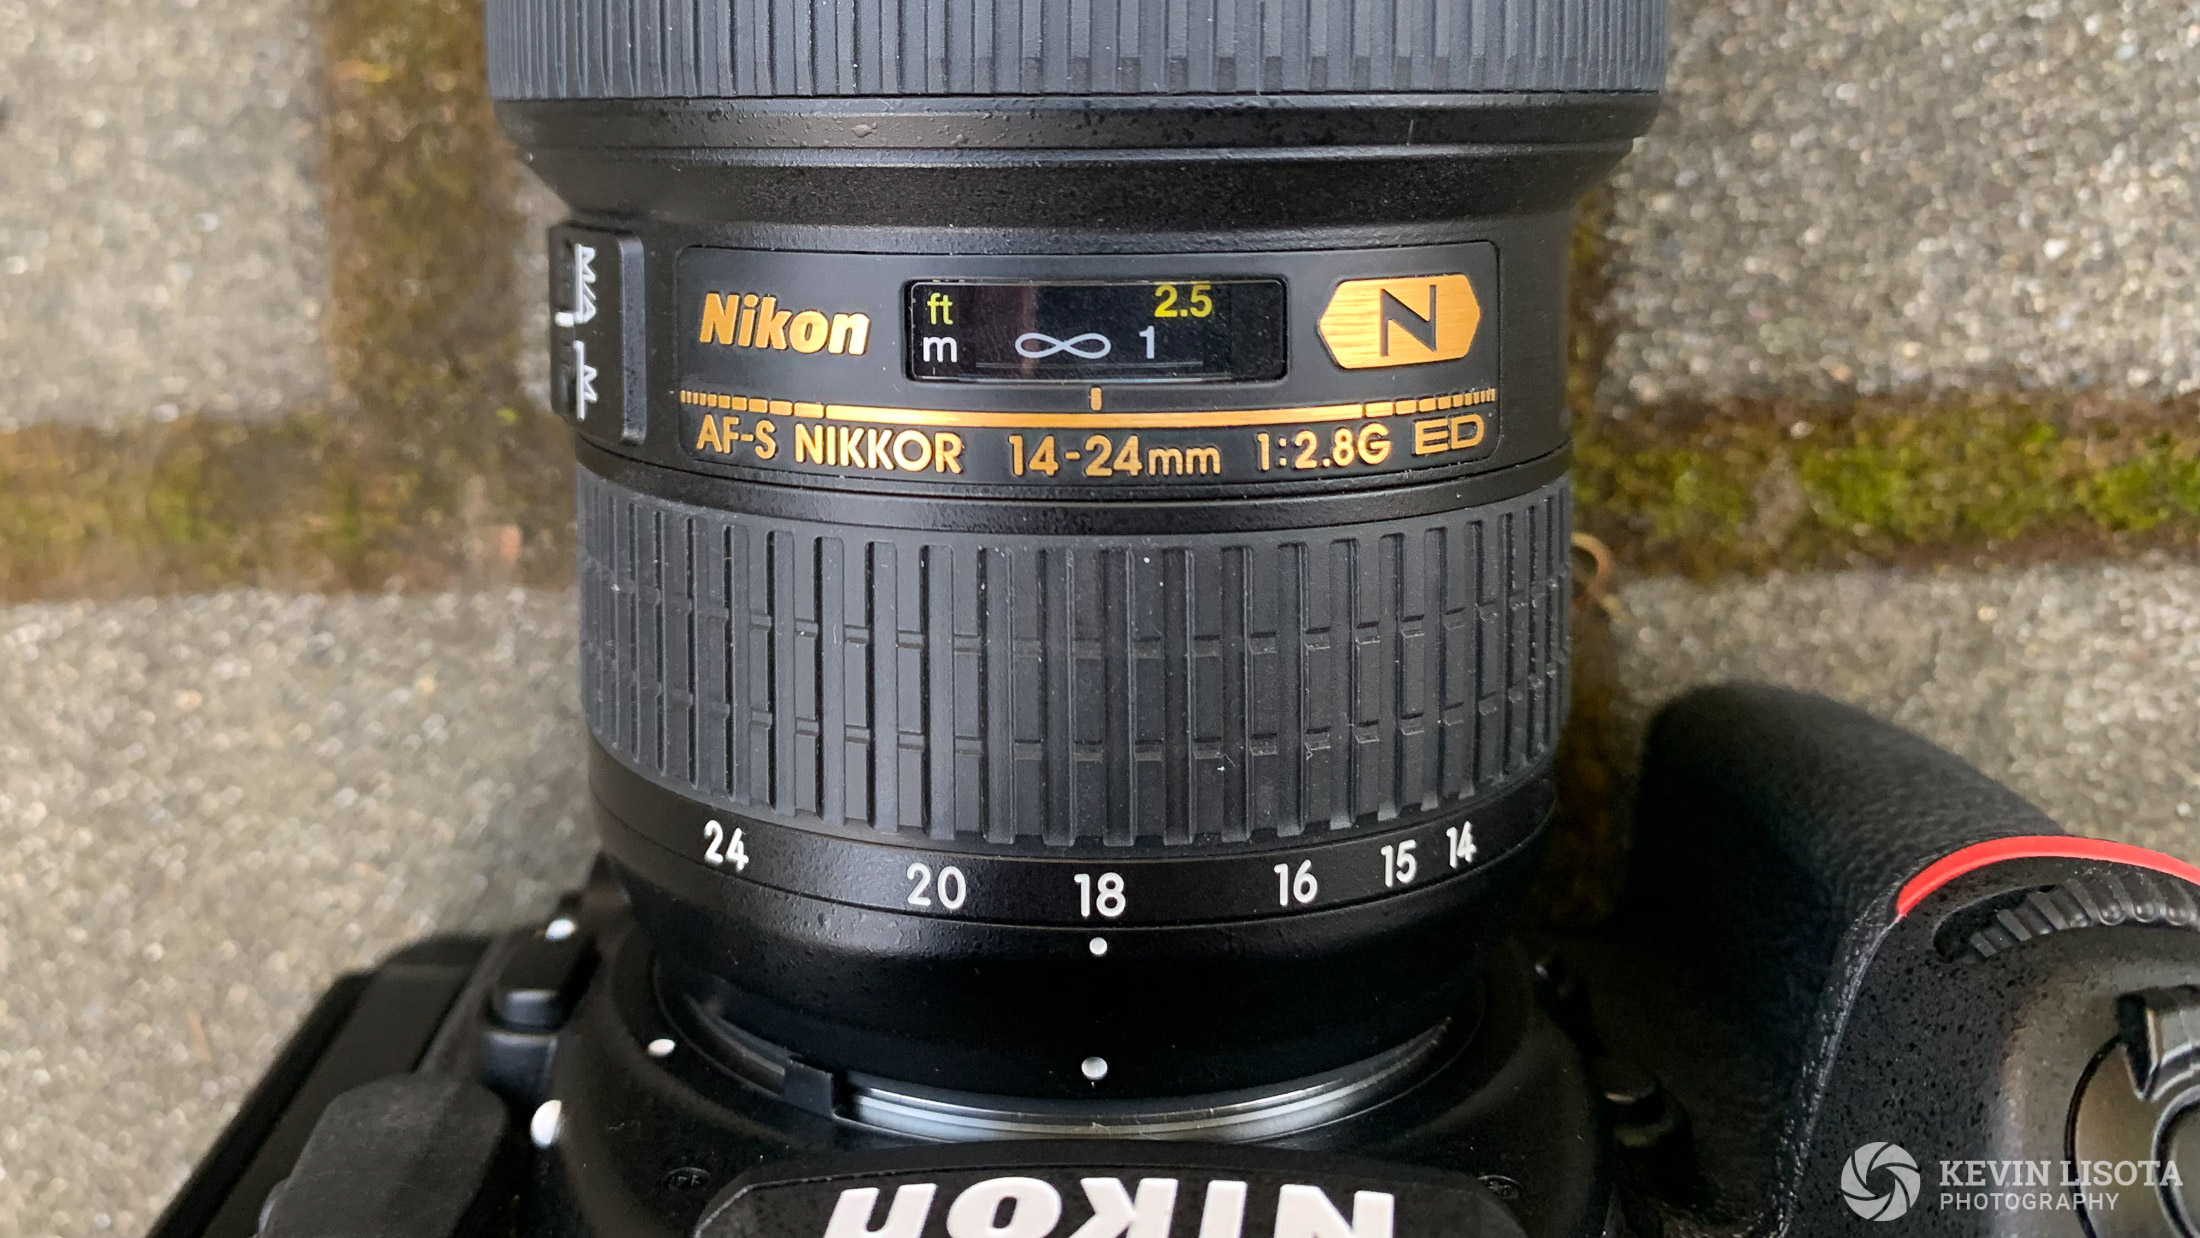 Nikon 14-24mm focused to infinity